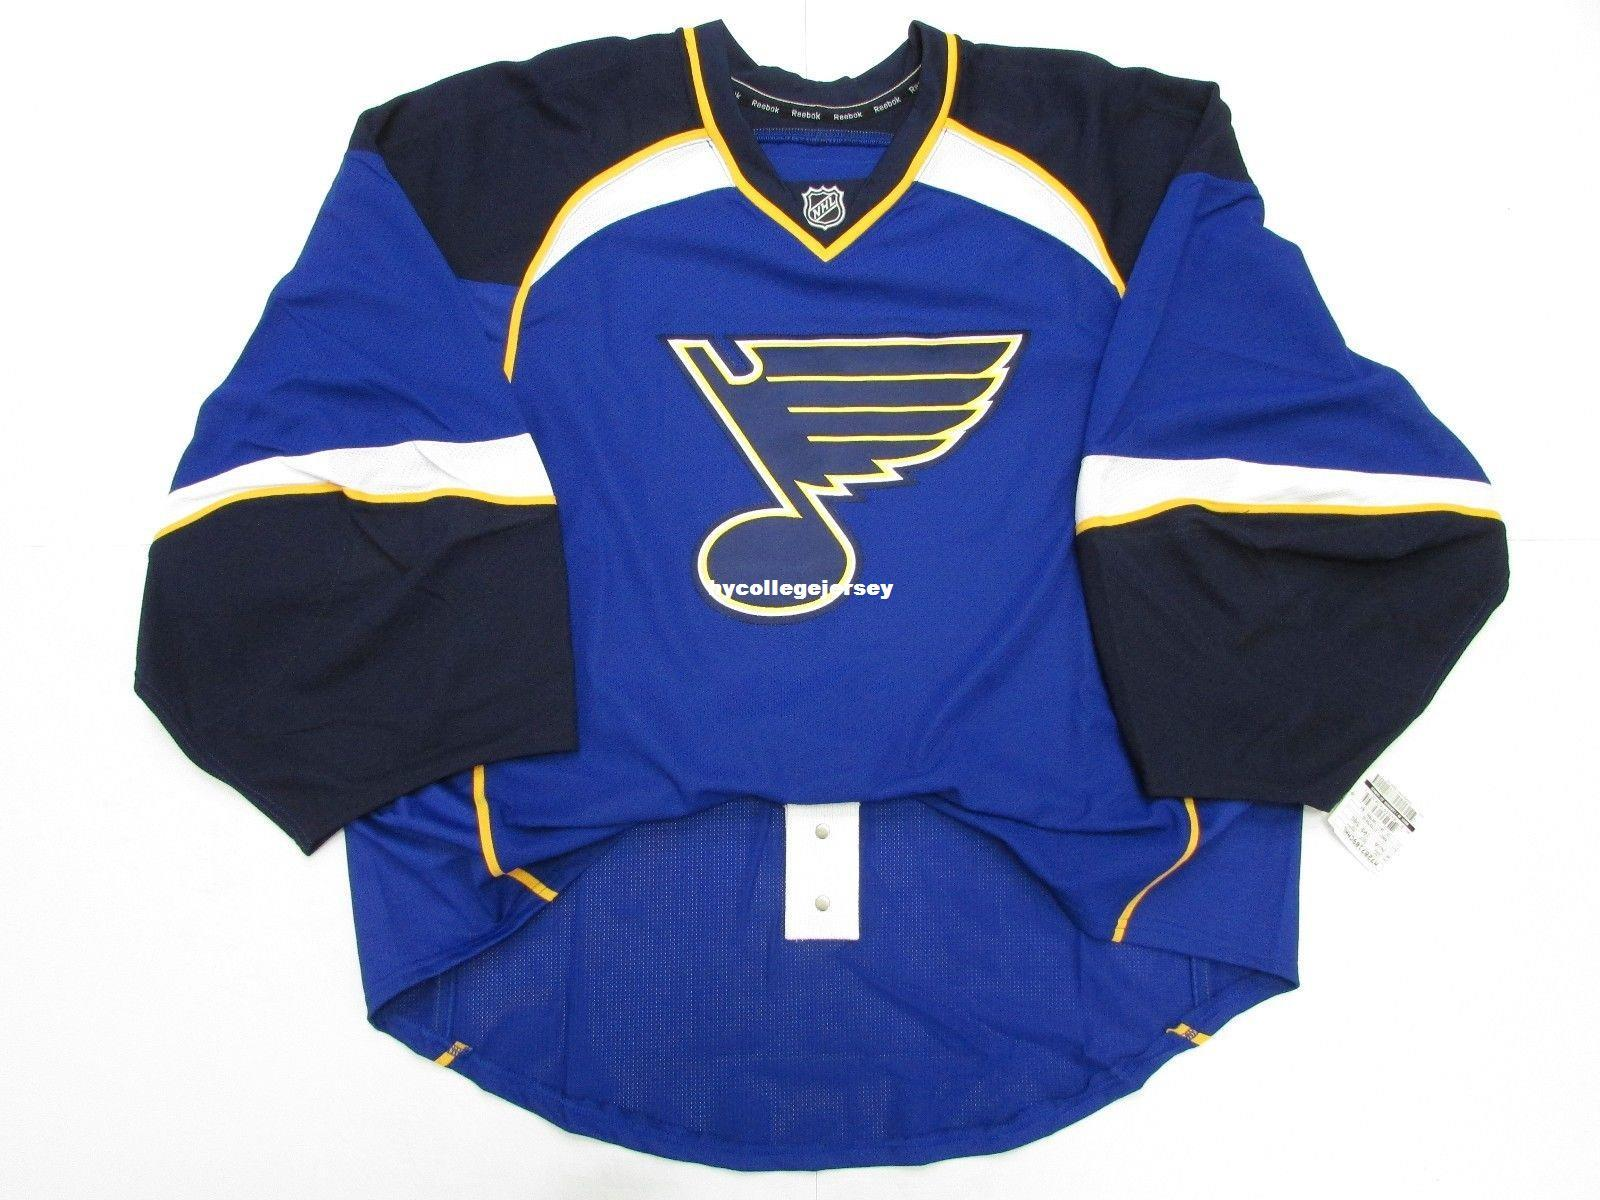 timeless design 23f42 65dce Cheap wholesale Custom ST. LOUIS BLUES HOME TEAM ISSUED EDGE JERSEY GOALIE  CUT 60 Mens Stitched Personalized hockey Jerseys